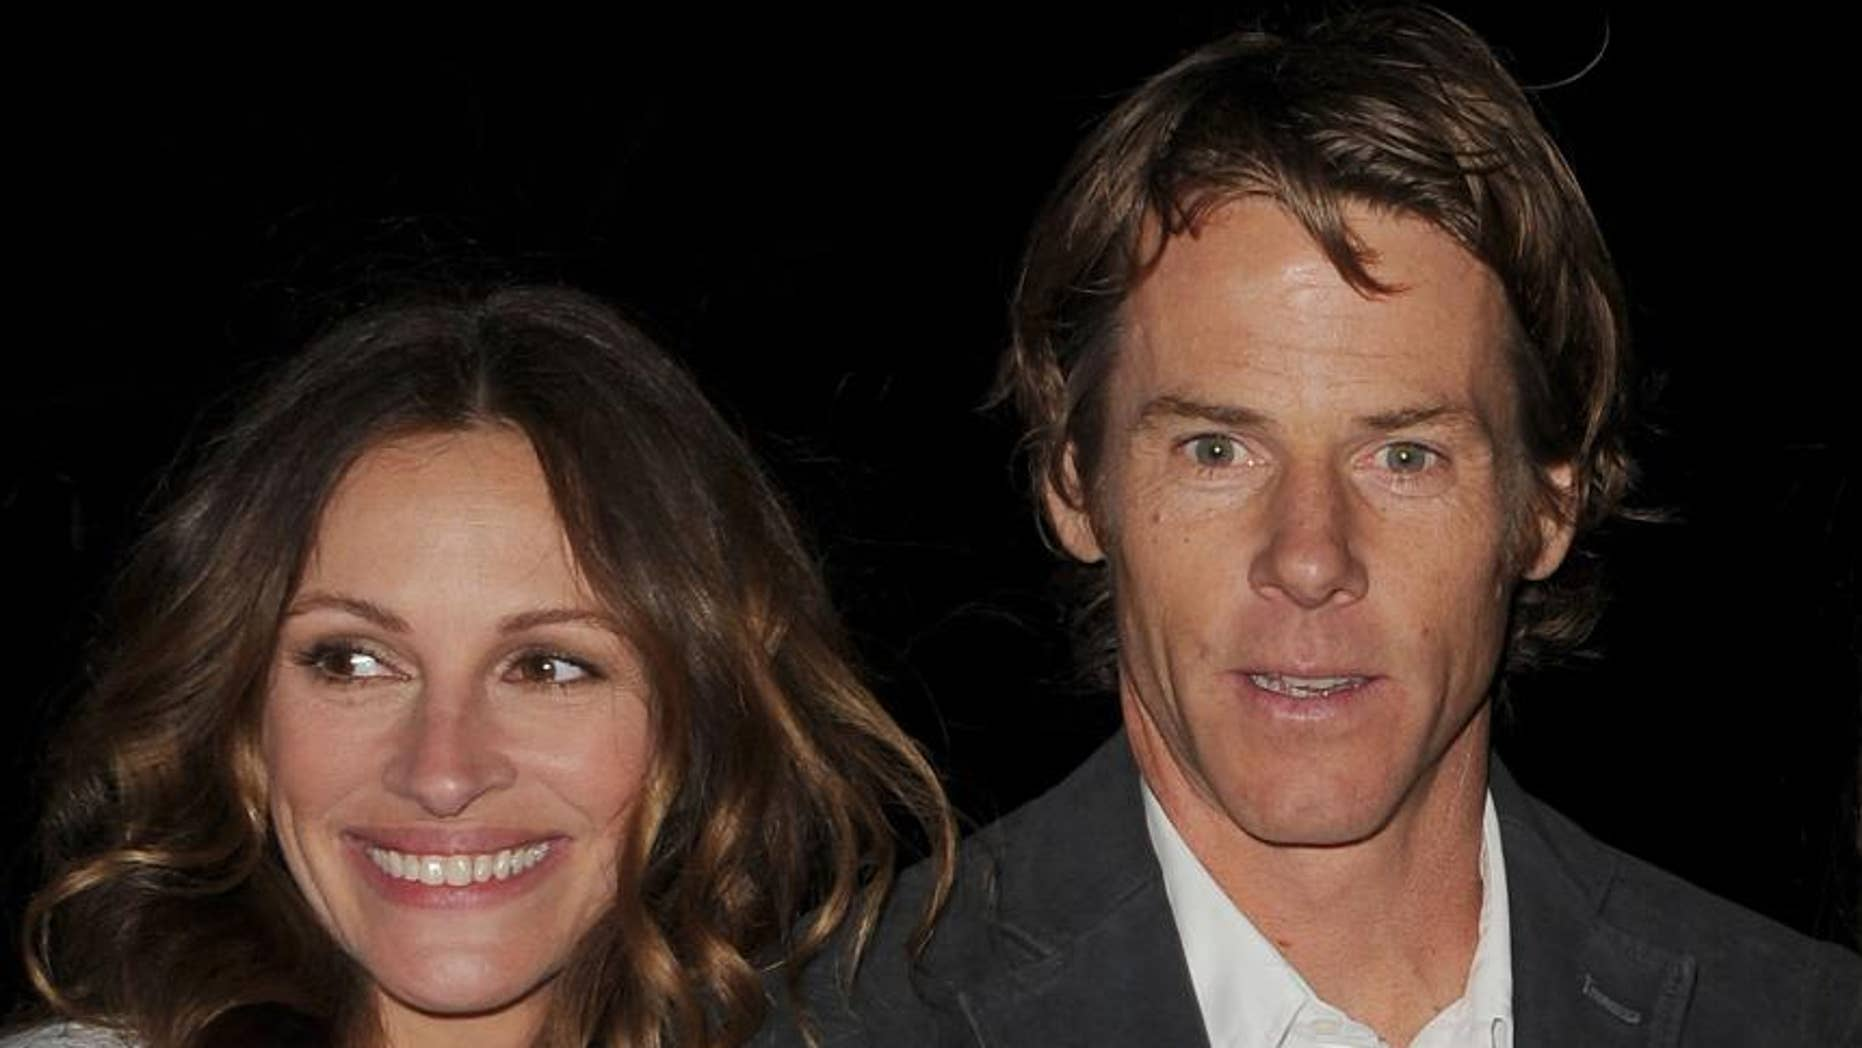 """Actress Julia Roberts, left, discussed the """"seismic shift"""" her life took when she met husband Danny Moder, right, in 2000 while shooting the film, """"The Mexican."""""""